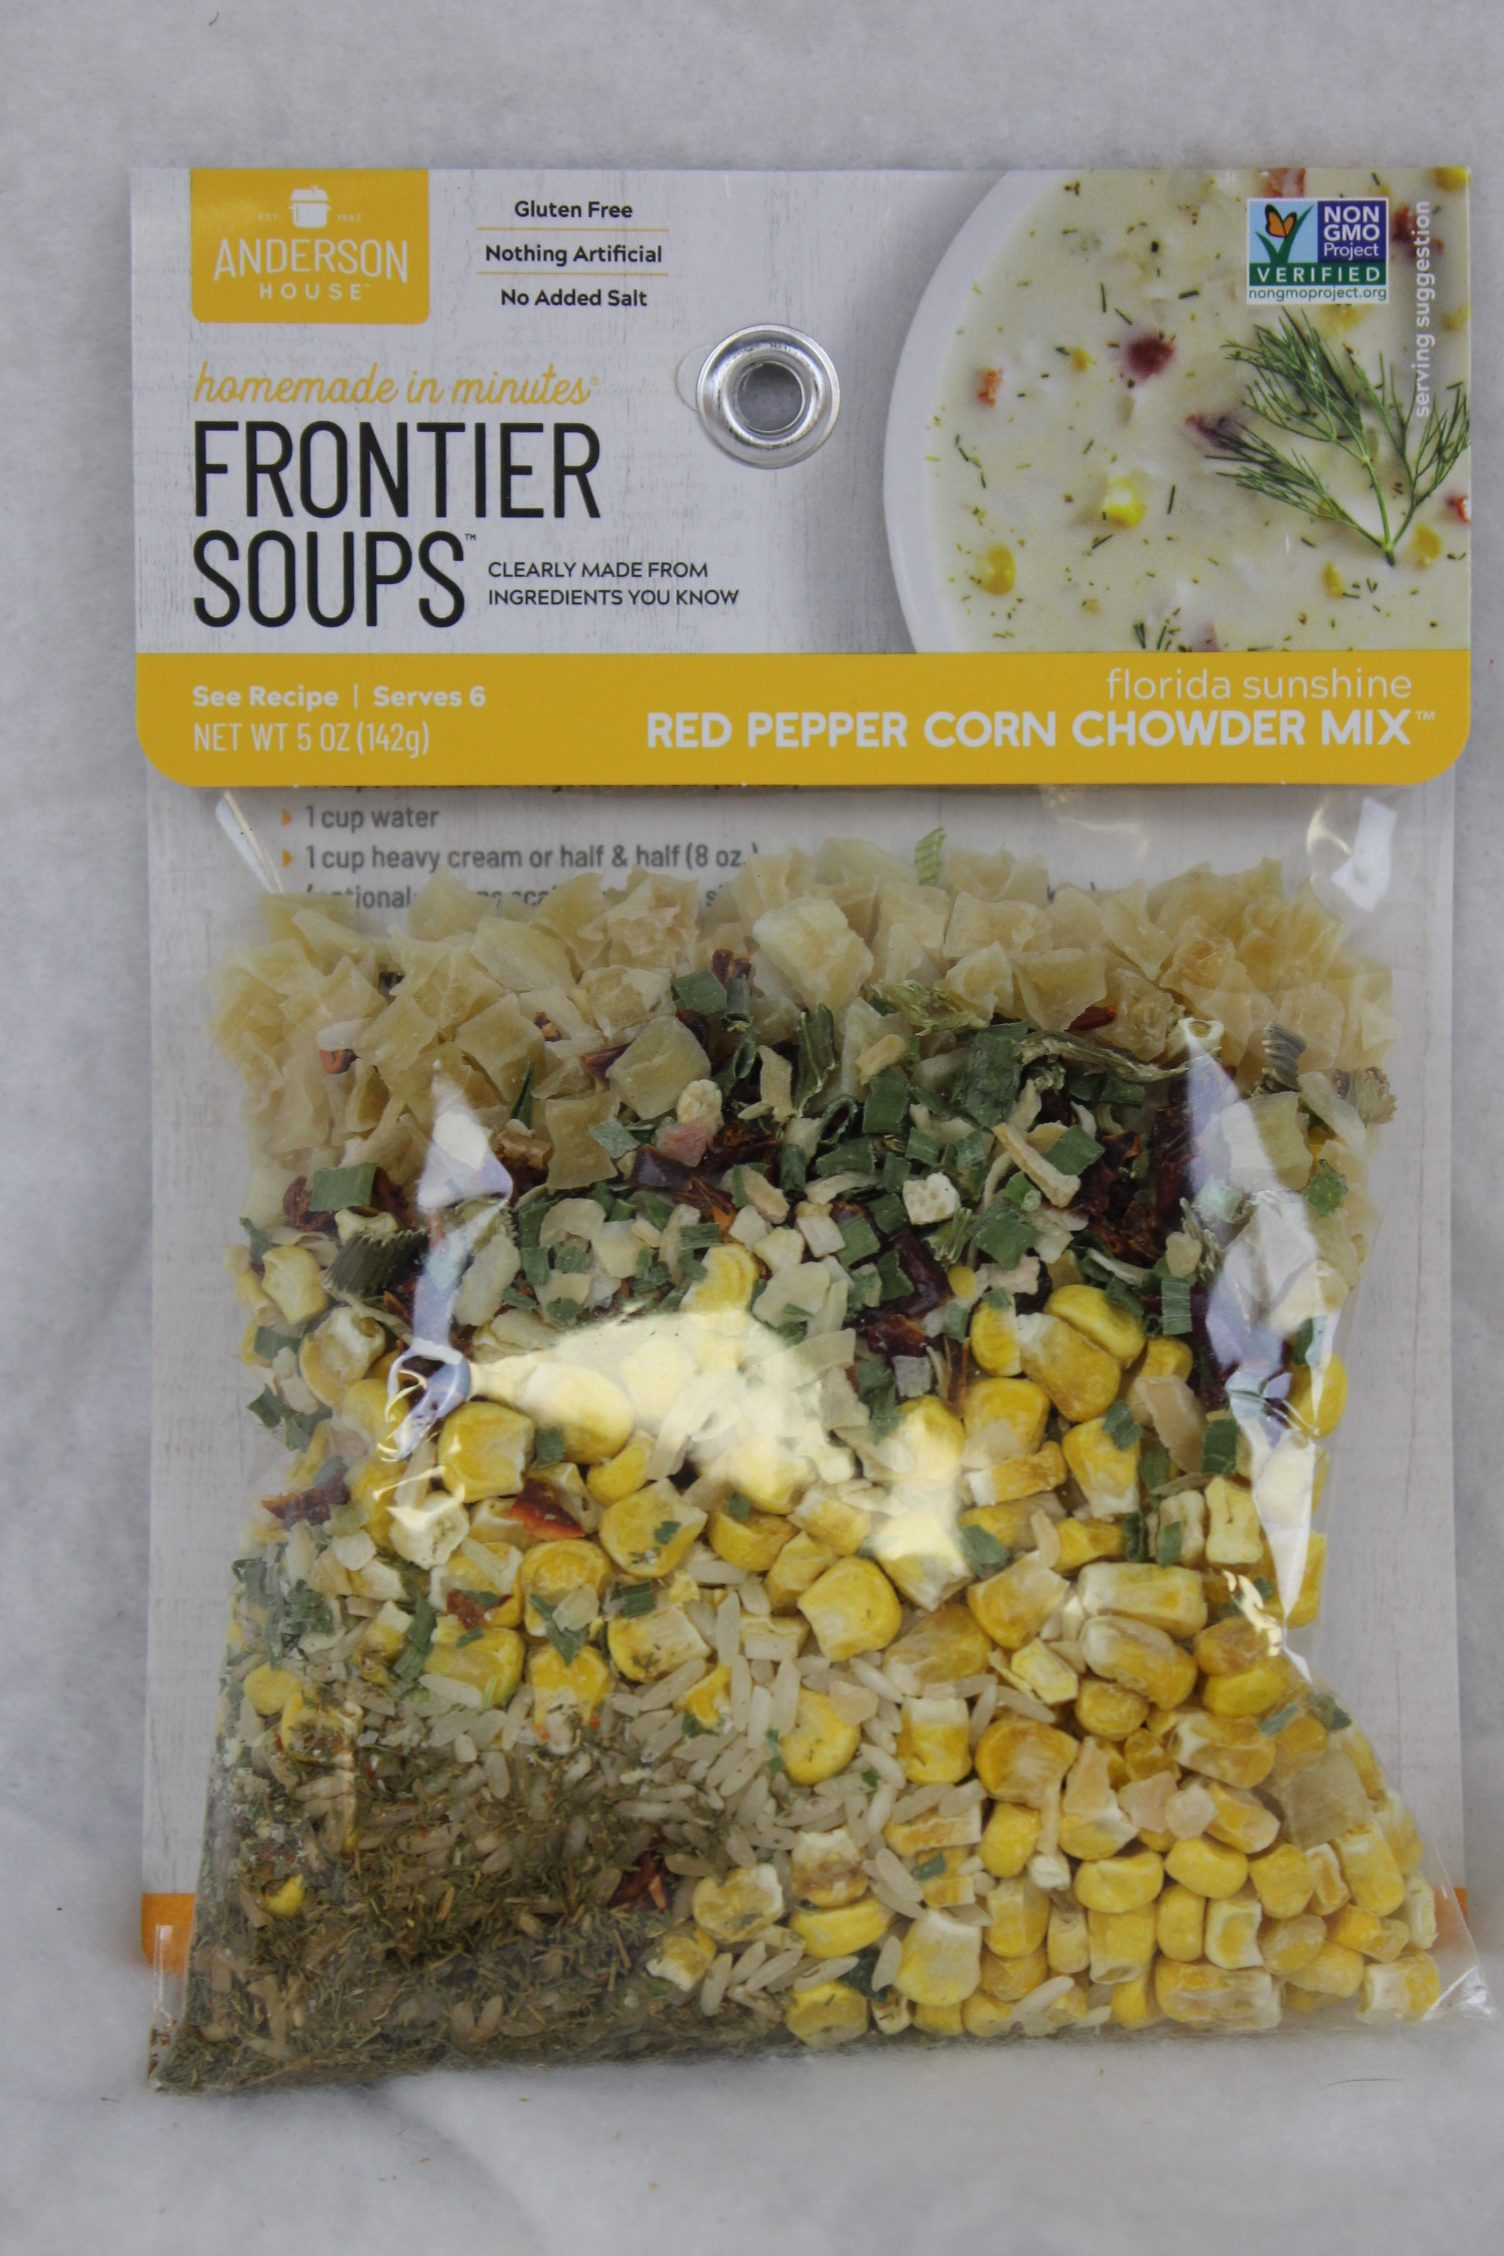 red pepper corn chowder soup mix product image